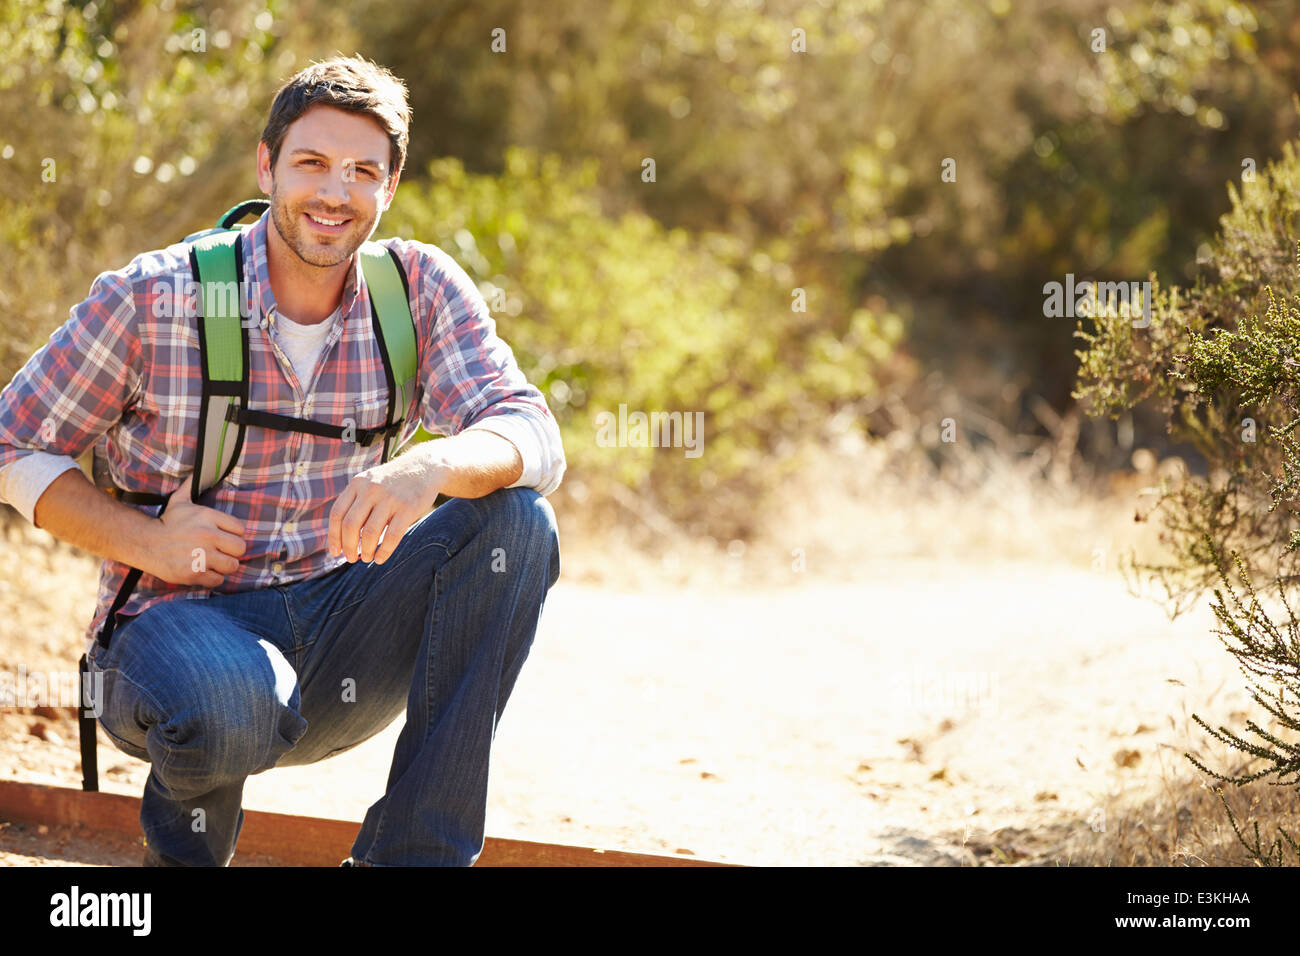 Portrait Of Man Hiking In Countryside Wearing Backpack - Stock Image